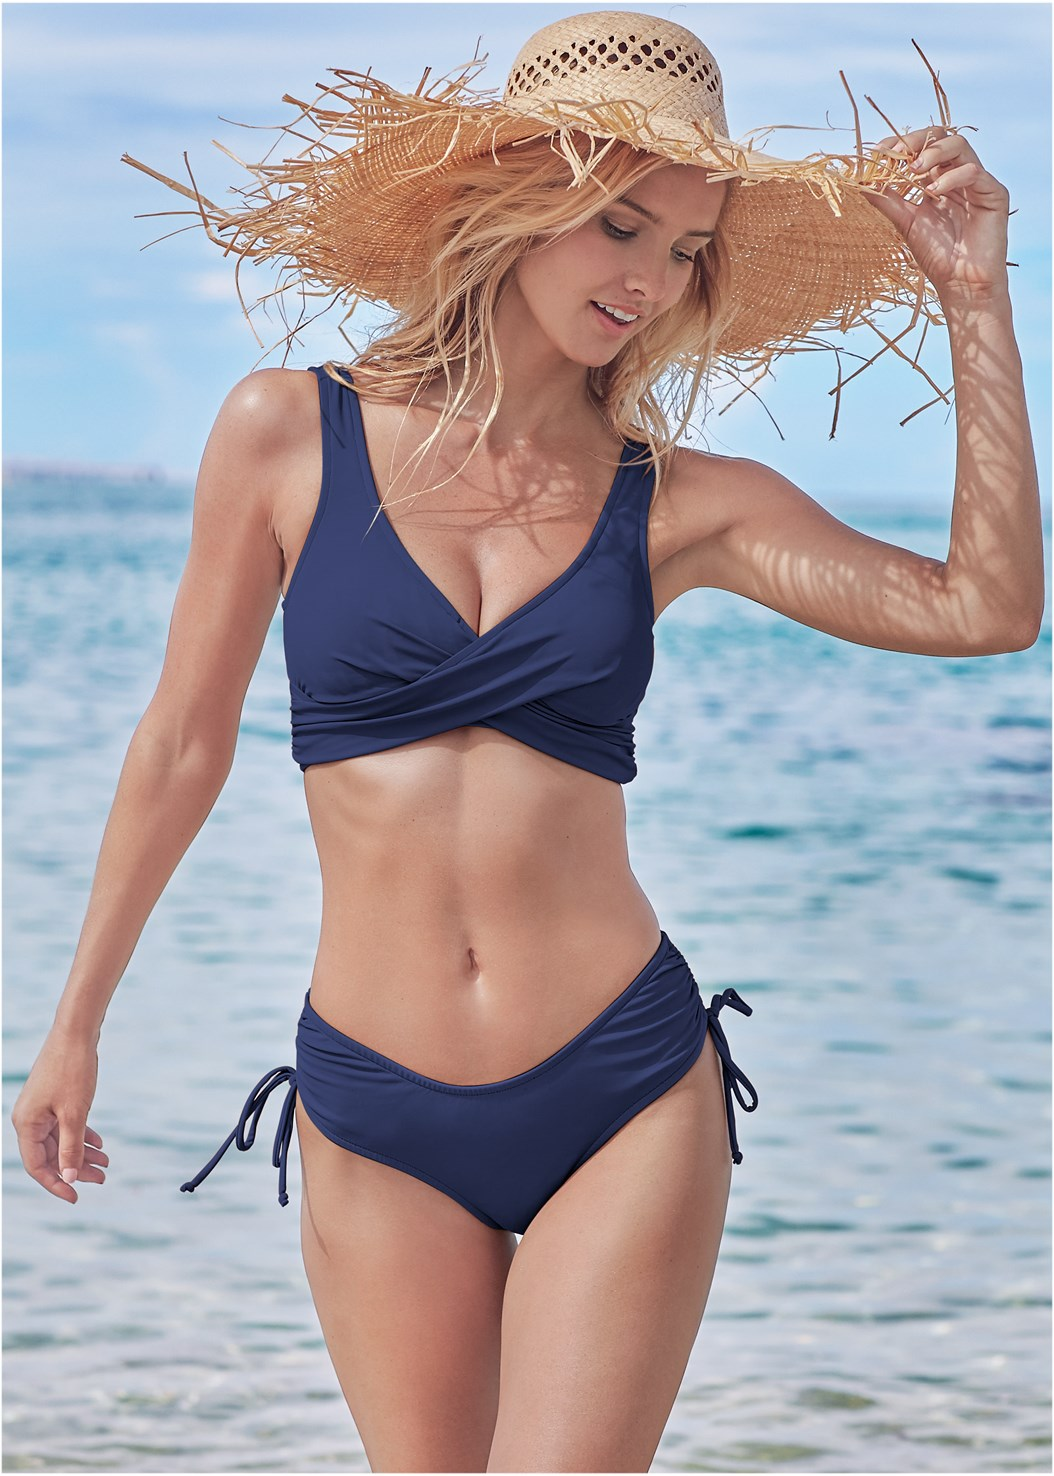 The Magnolia Moderate Bottom,Lovely Lift Wrap Bikini Top,Marilyn Underwire Push Up Halter Top,Underwire Wrap Top